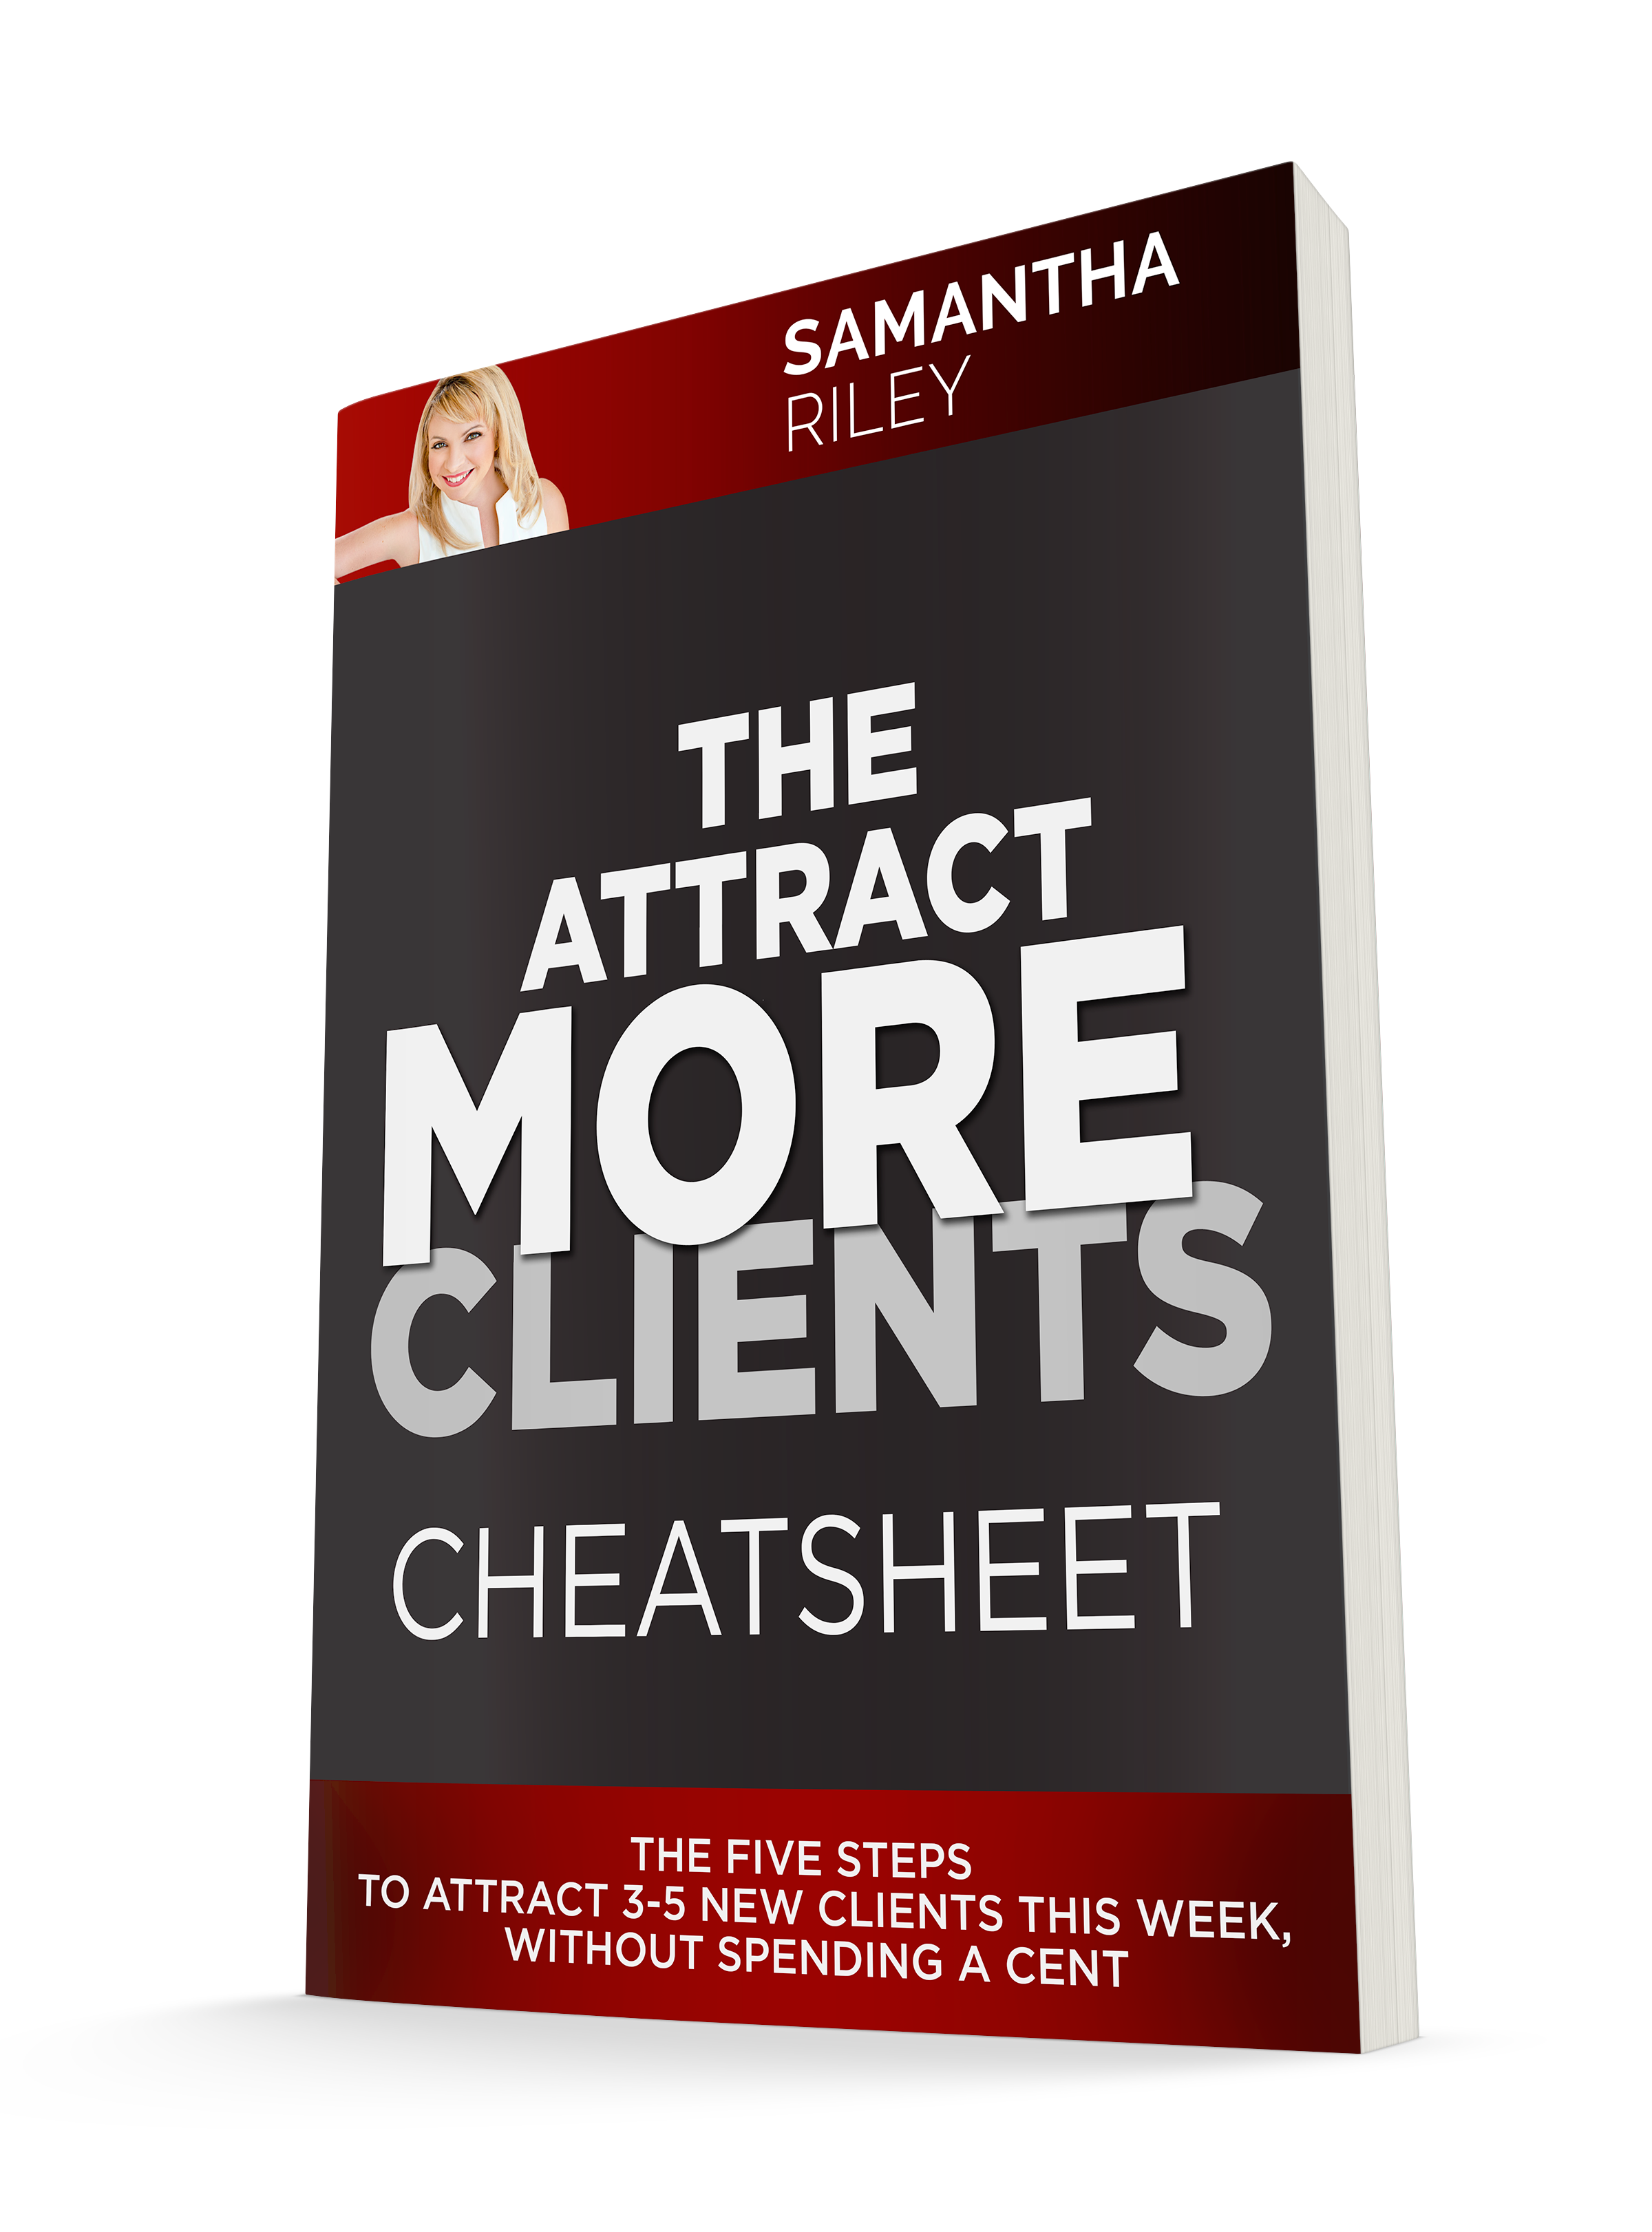 The attract more clients cheatsheet